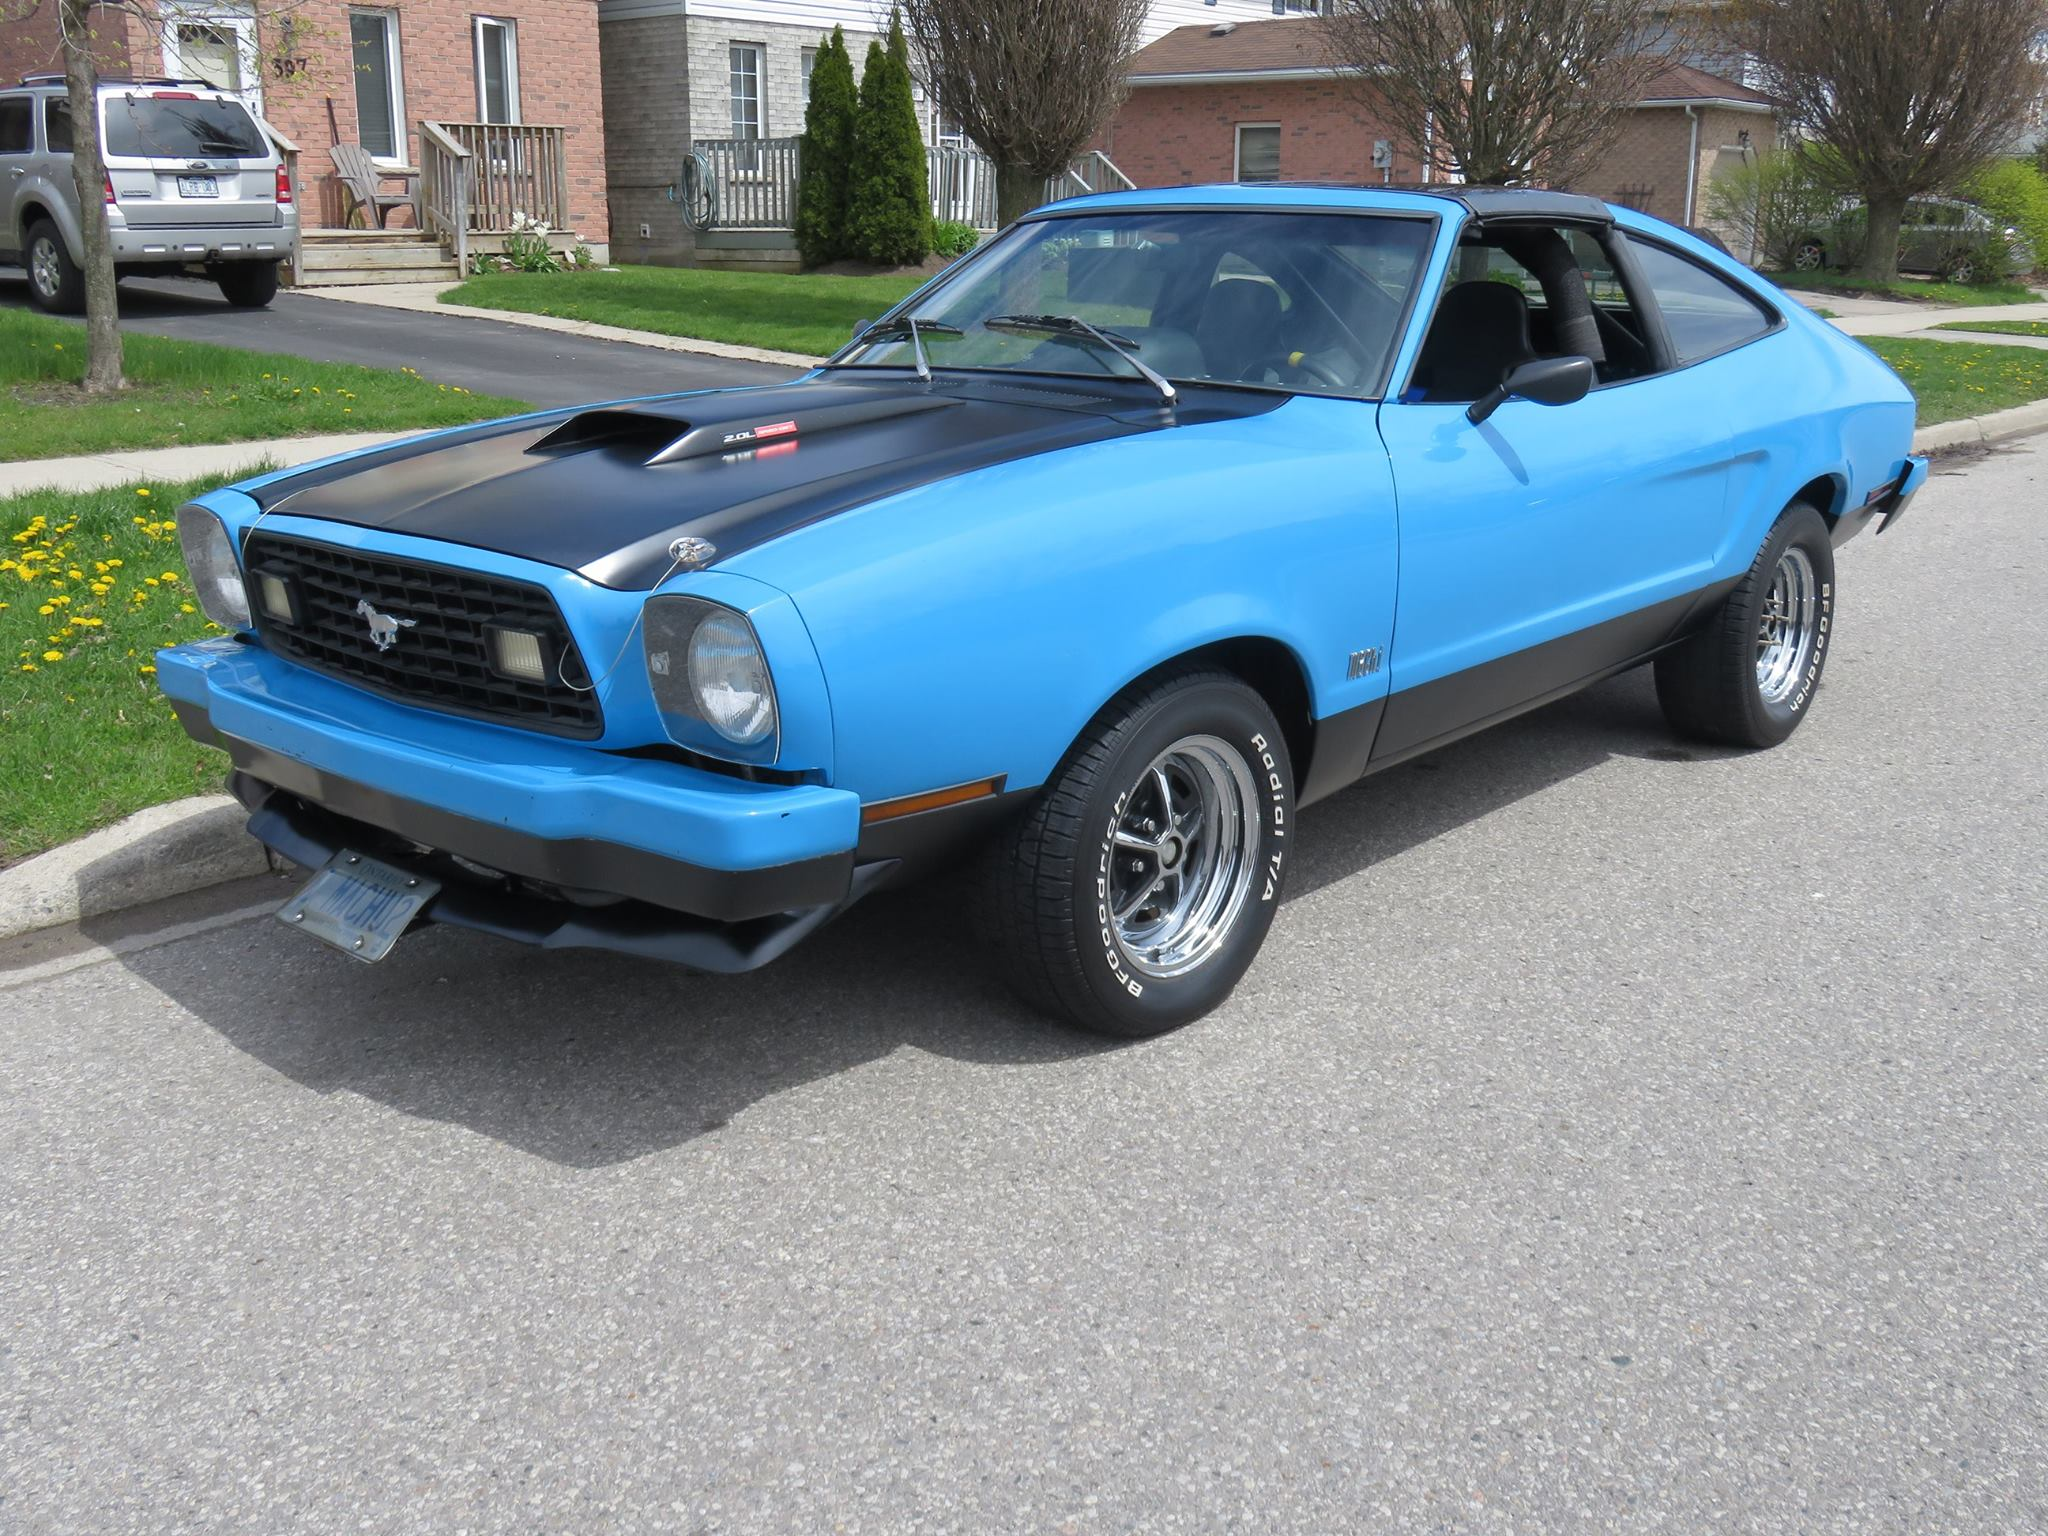 1978 mustang with a nissan turbo inline four engine swap depot rh engineswapdepot com